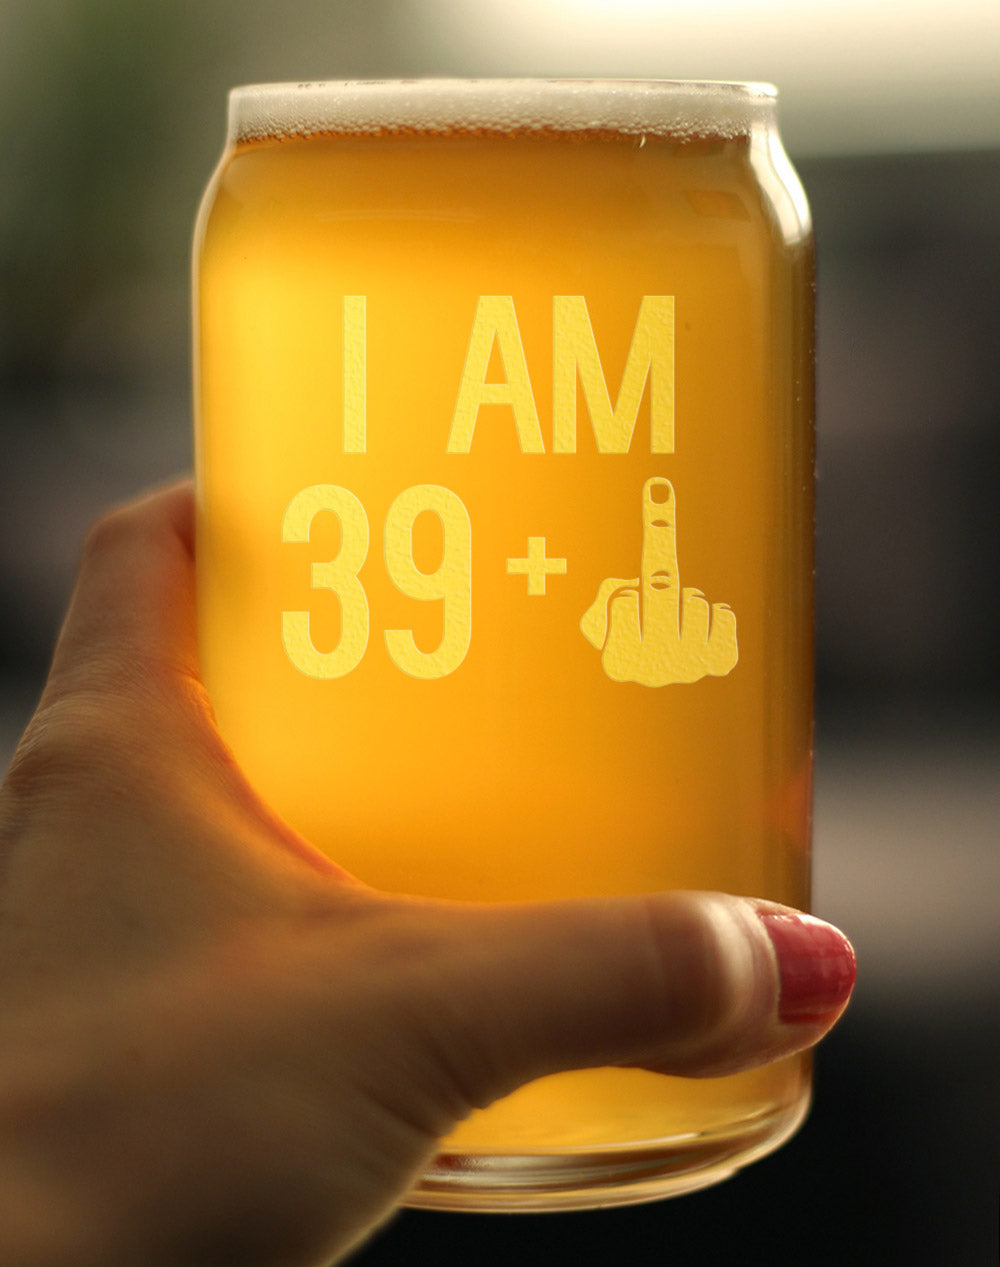 39 + 1 Middle Finger - 16 Ounce Beer Can Pint Glass